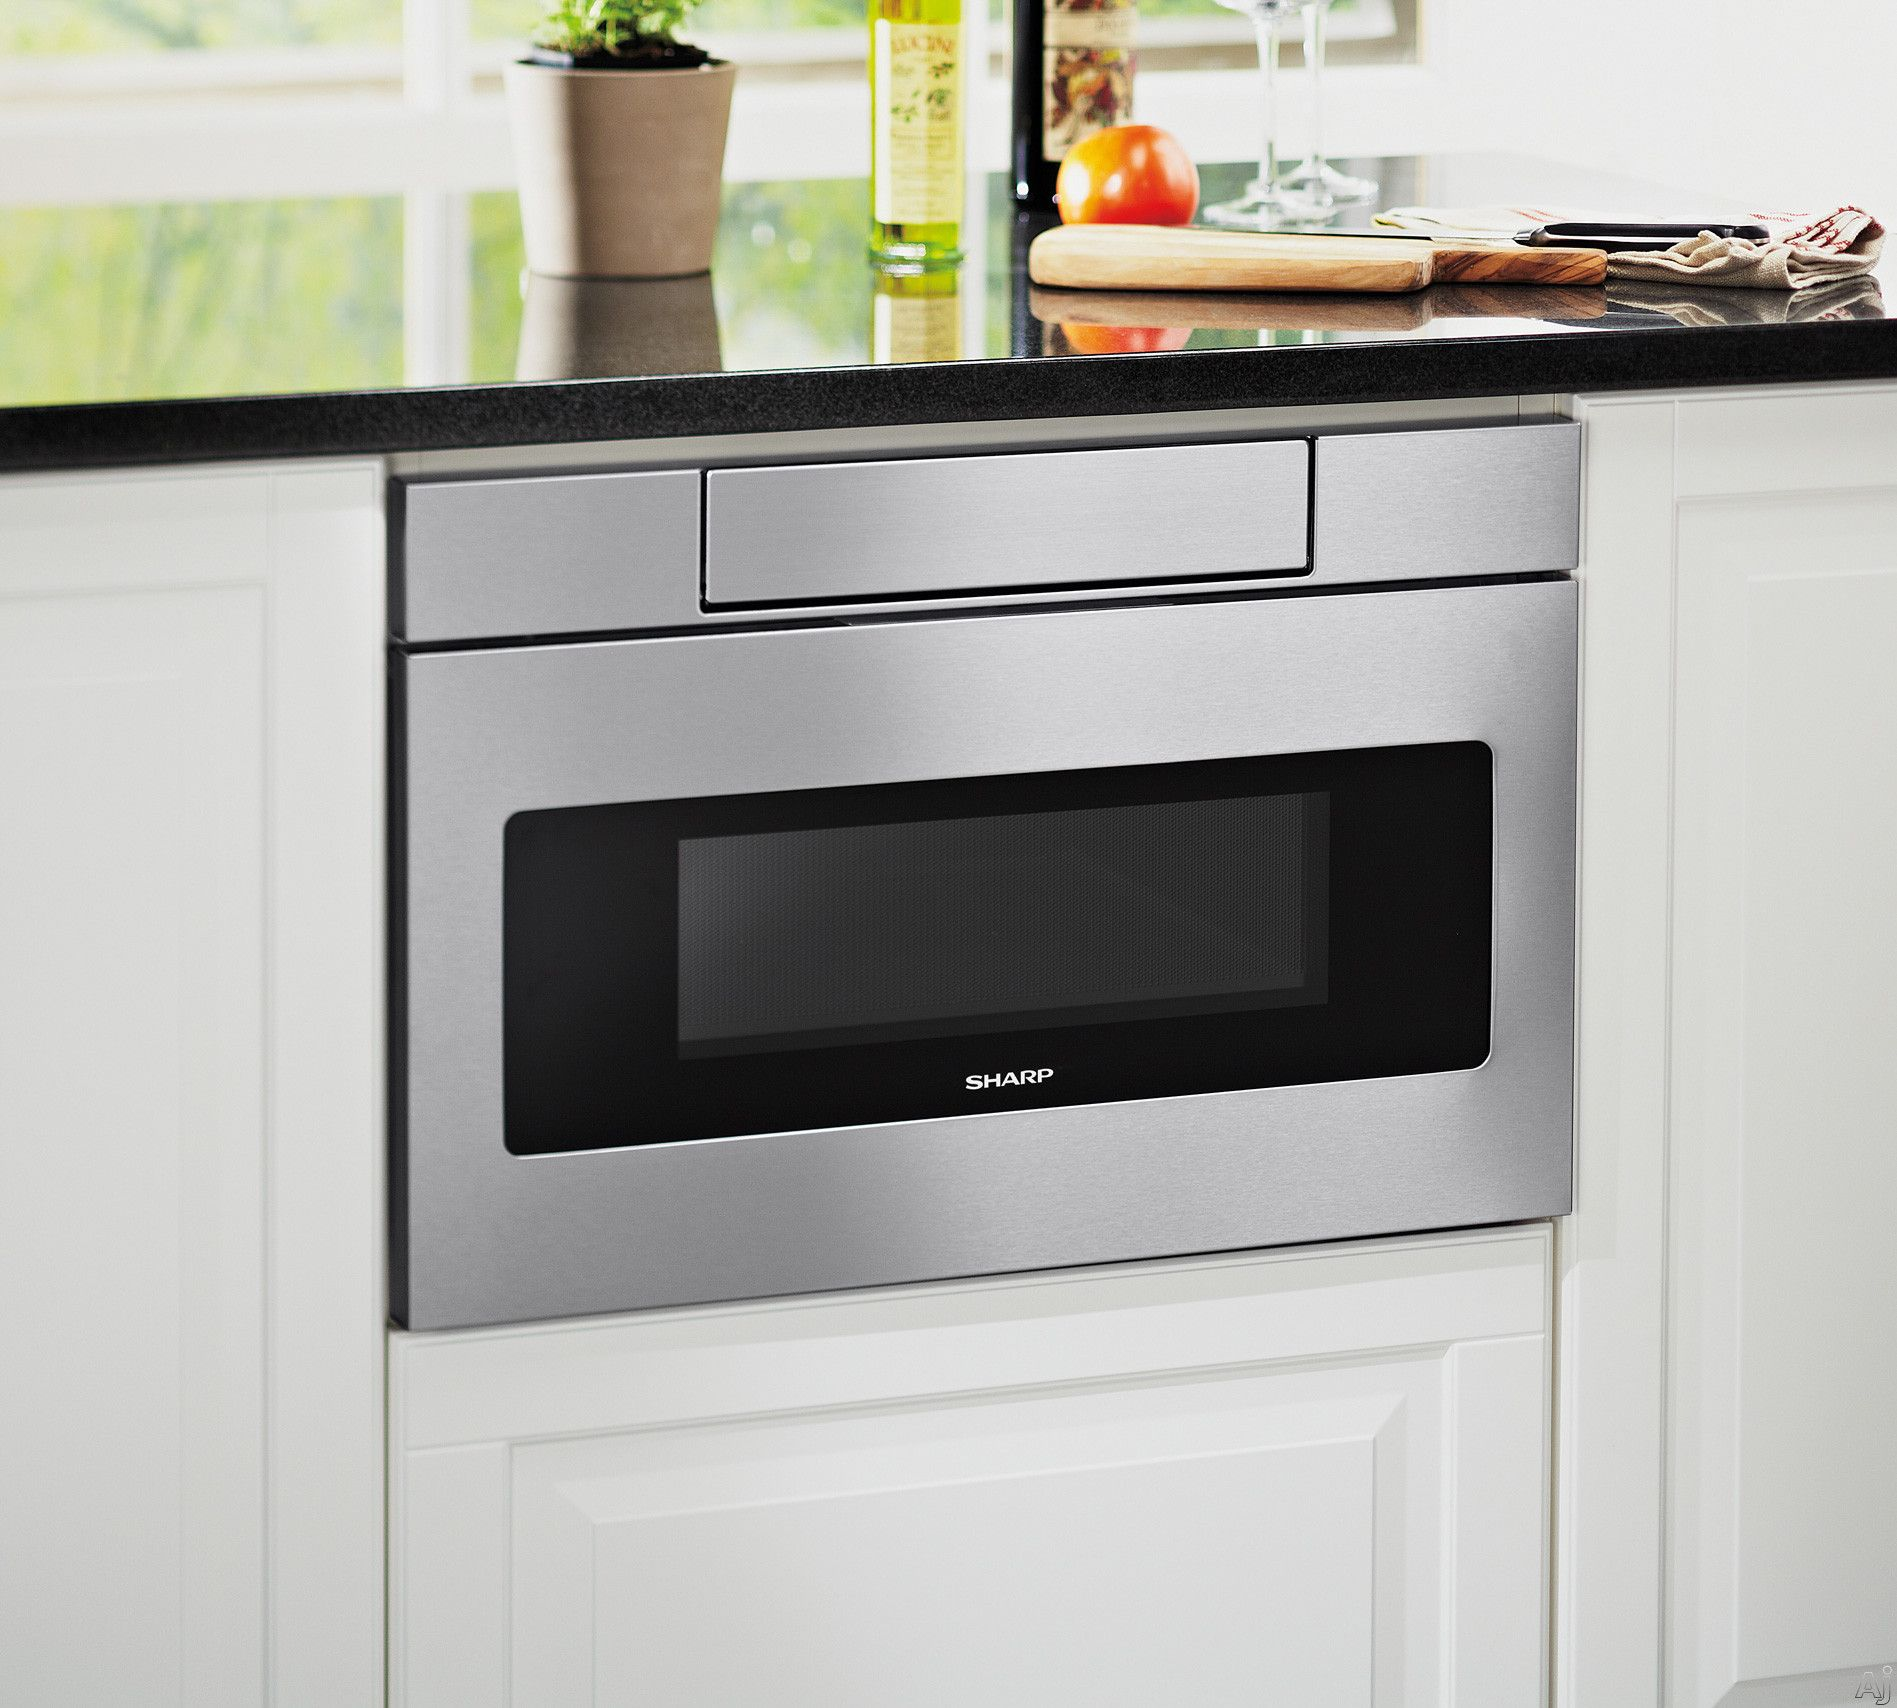 sharp smd2470as 24 inch microwave